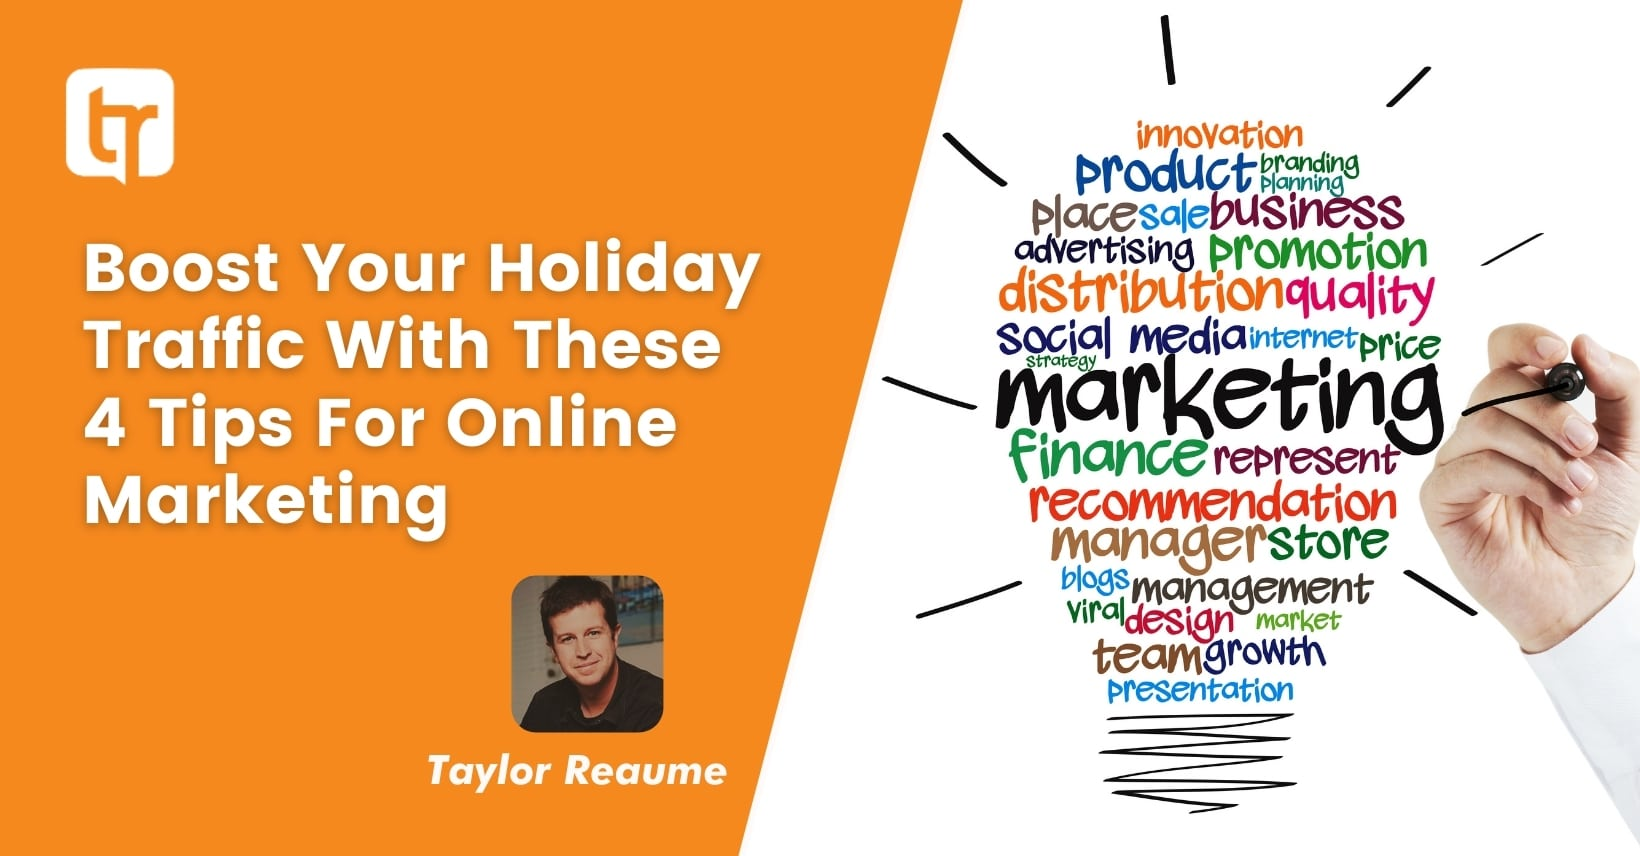 Boost Your Holiday Traffic With These 4 Online Marketing Tips